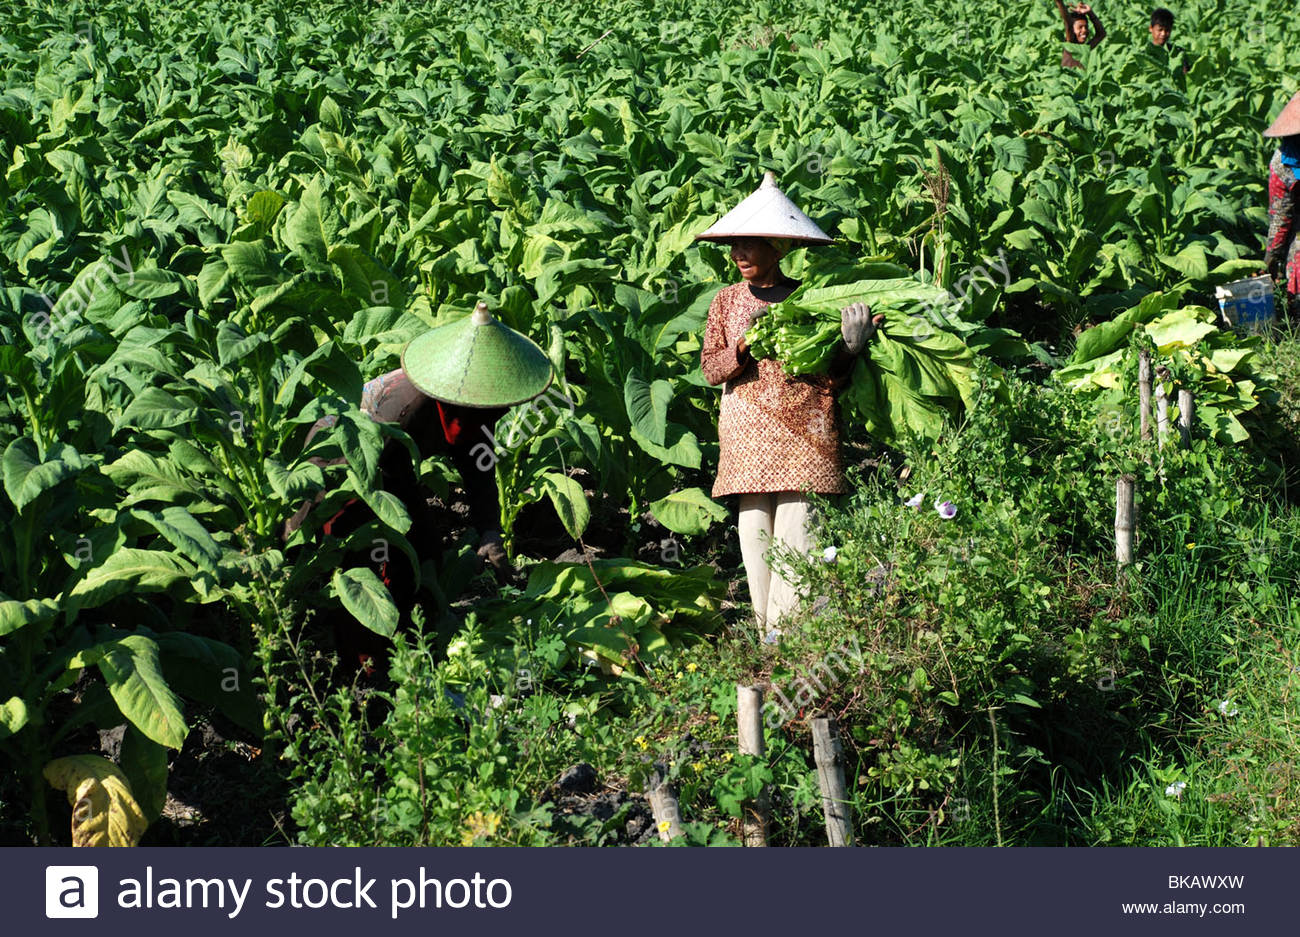 Women in cane hats harvesting tobacco leaves in field Keruak Lombok Timur NTB Indonesia - Stock Image